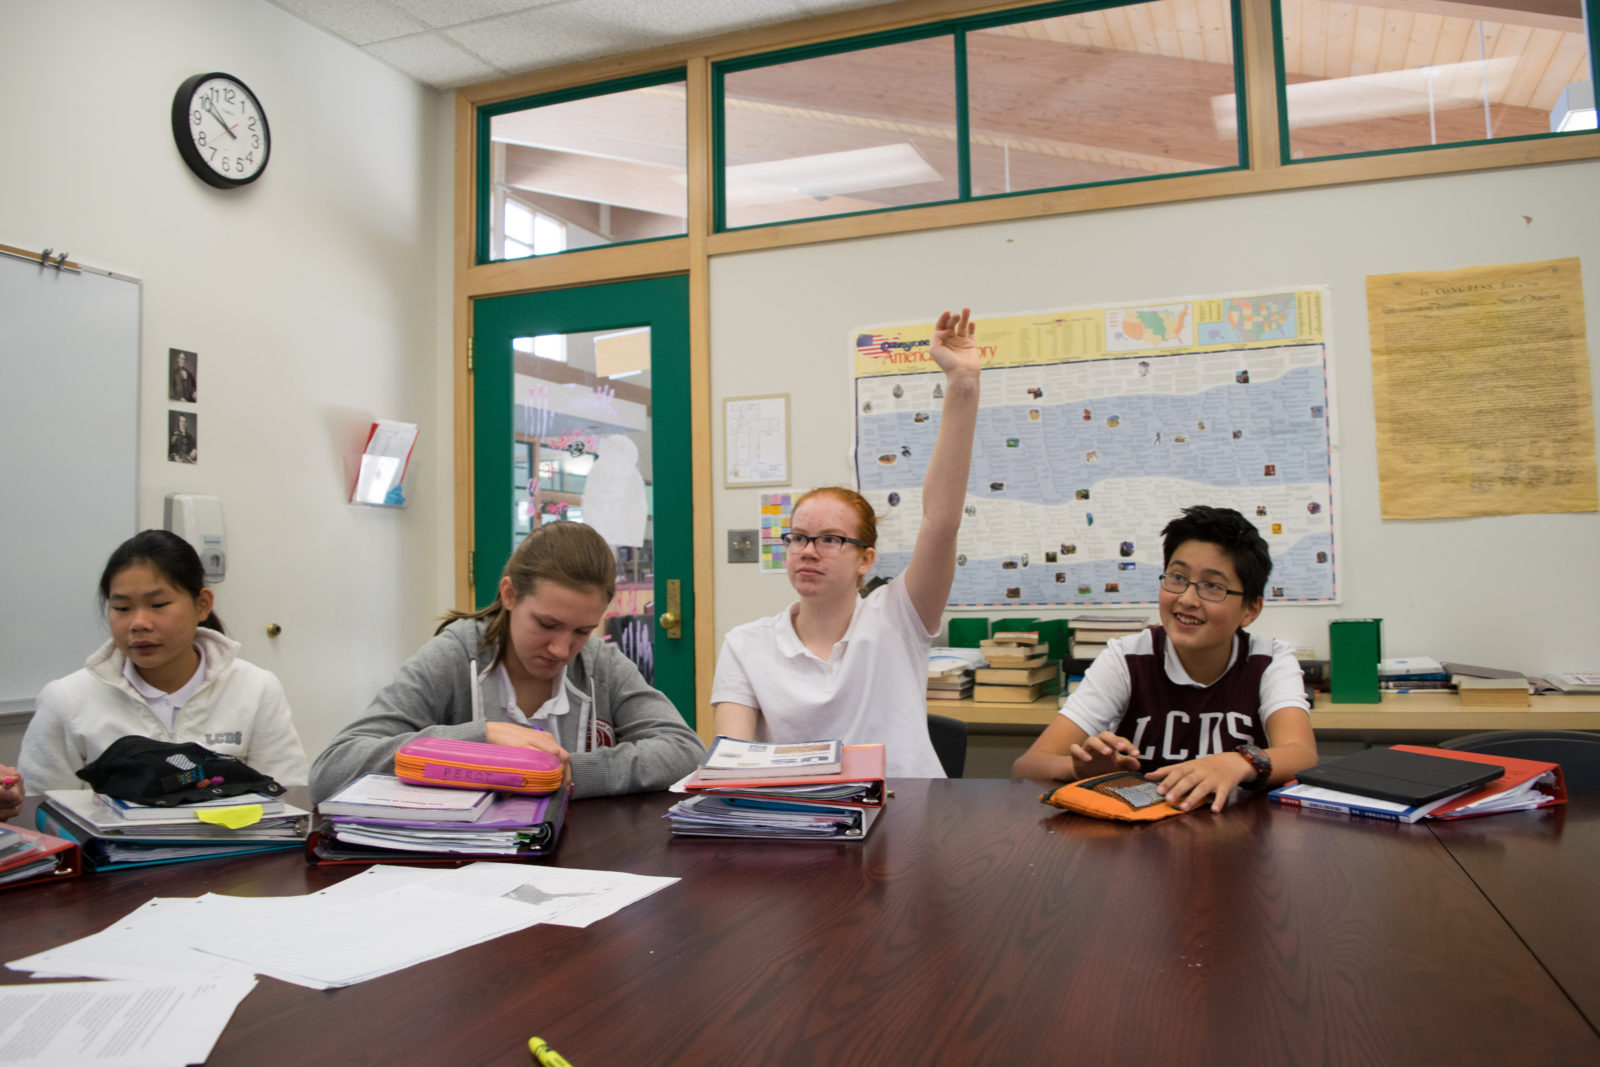 In history class, students are discussing some of the first battles in the Revolutionary War.